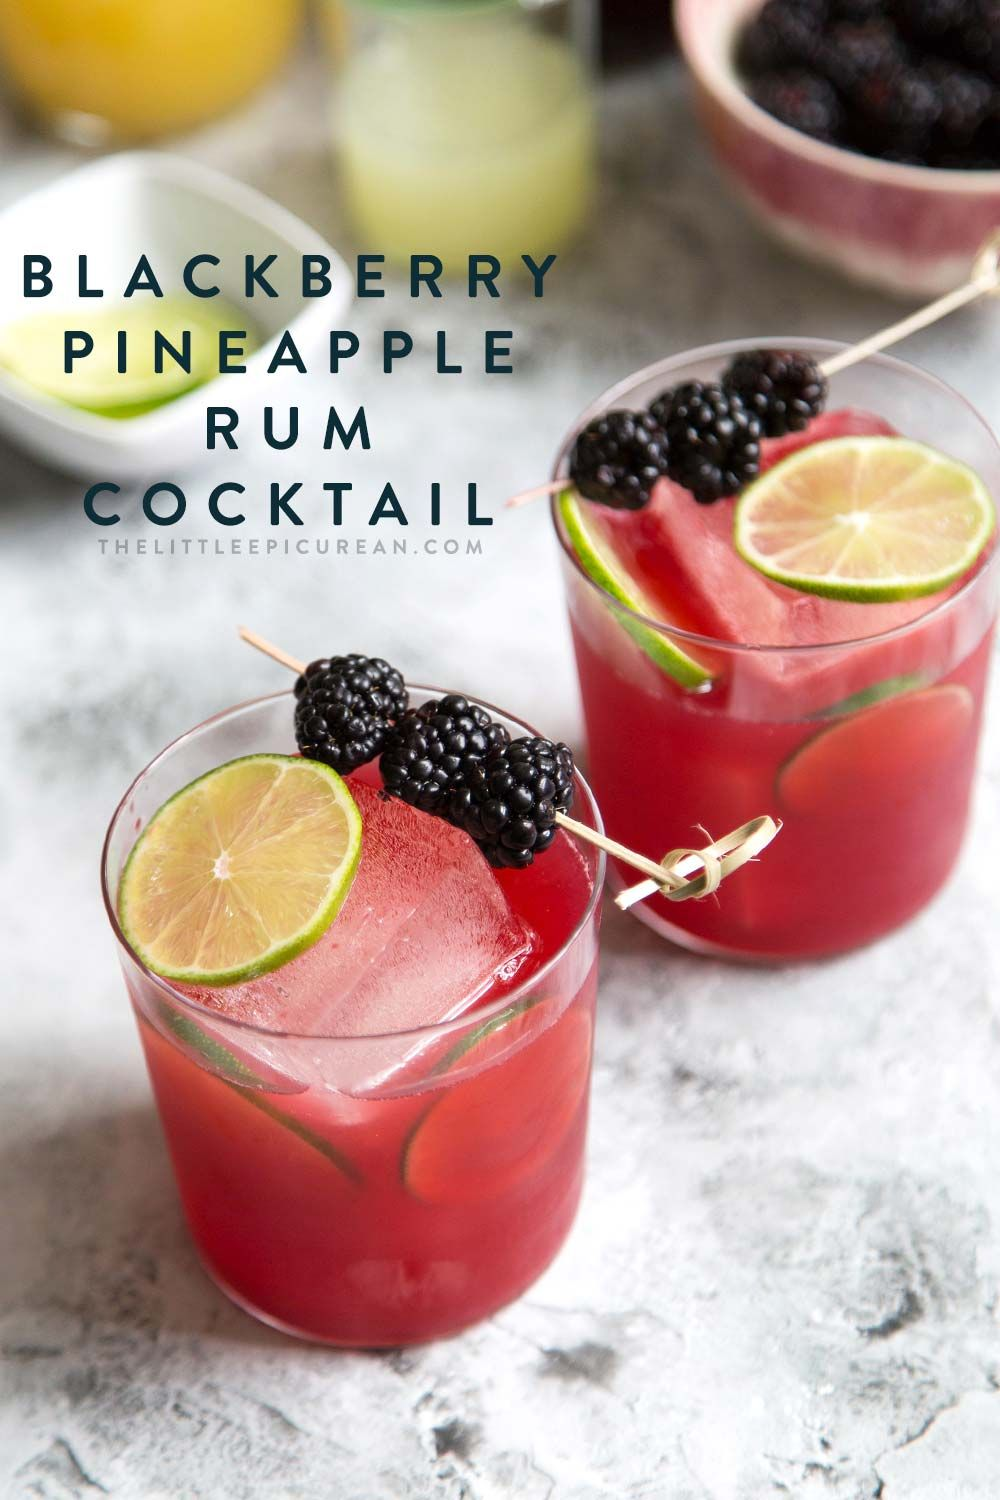 Photo of Blackberry Pineapple Rum Cocktail